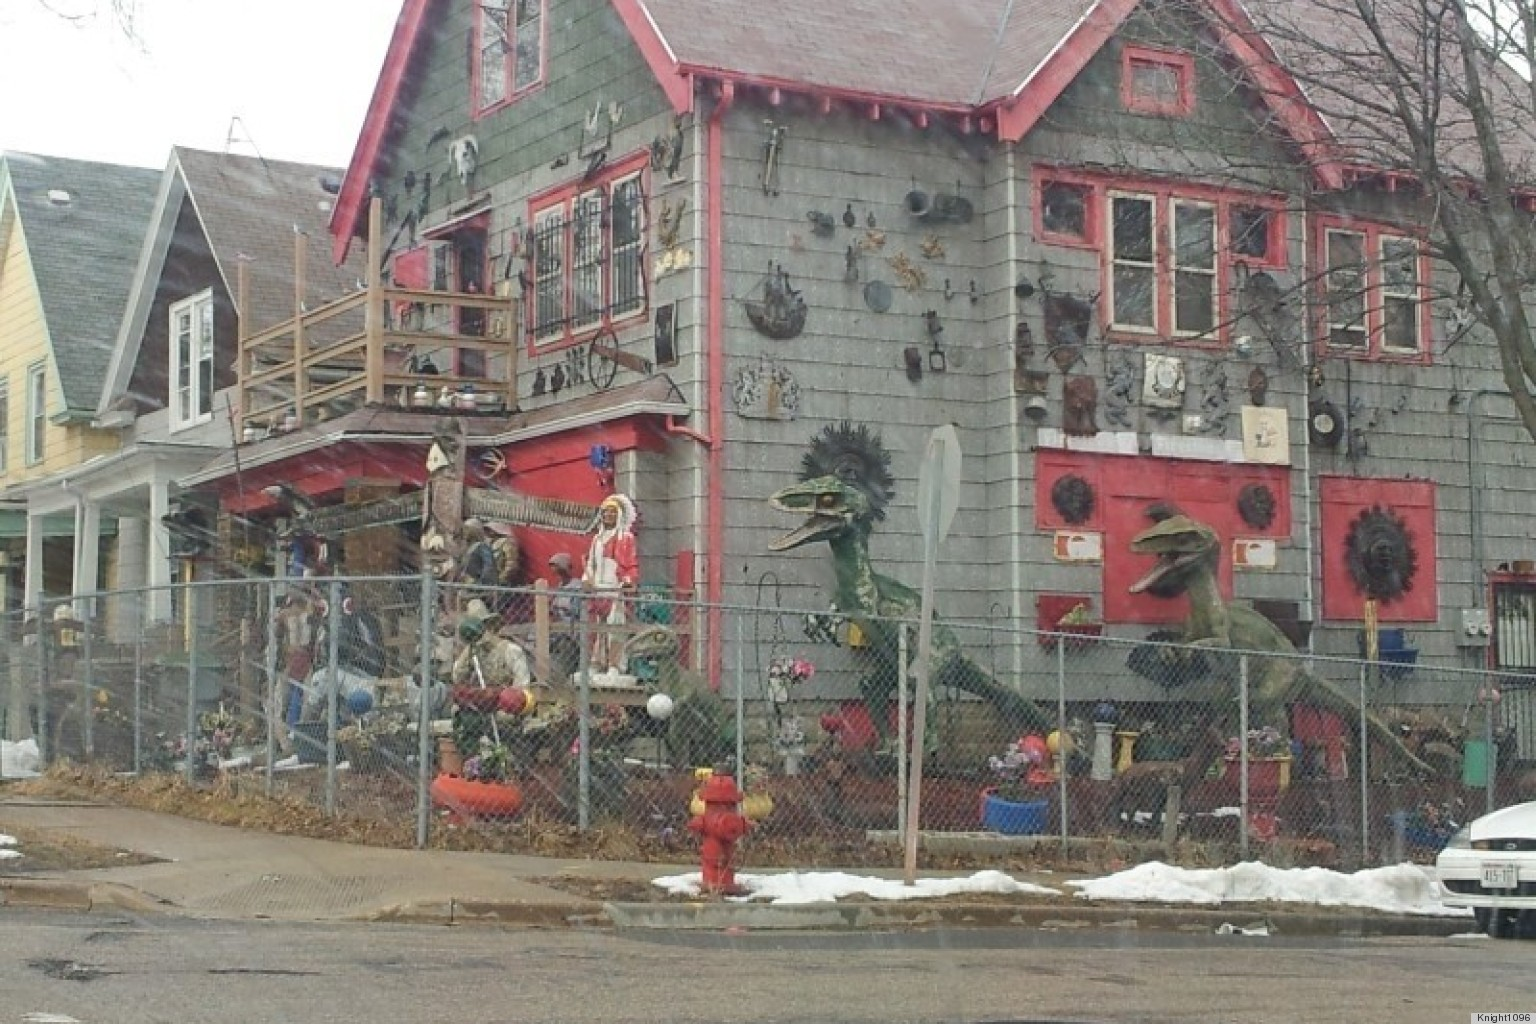 Dinosaur Lawn Decorations Milwaukee Dinosaur Home Features Crazy Number Of Lawn Ornaments